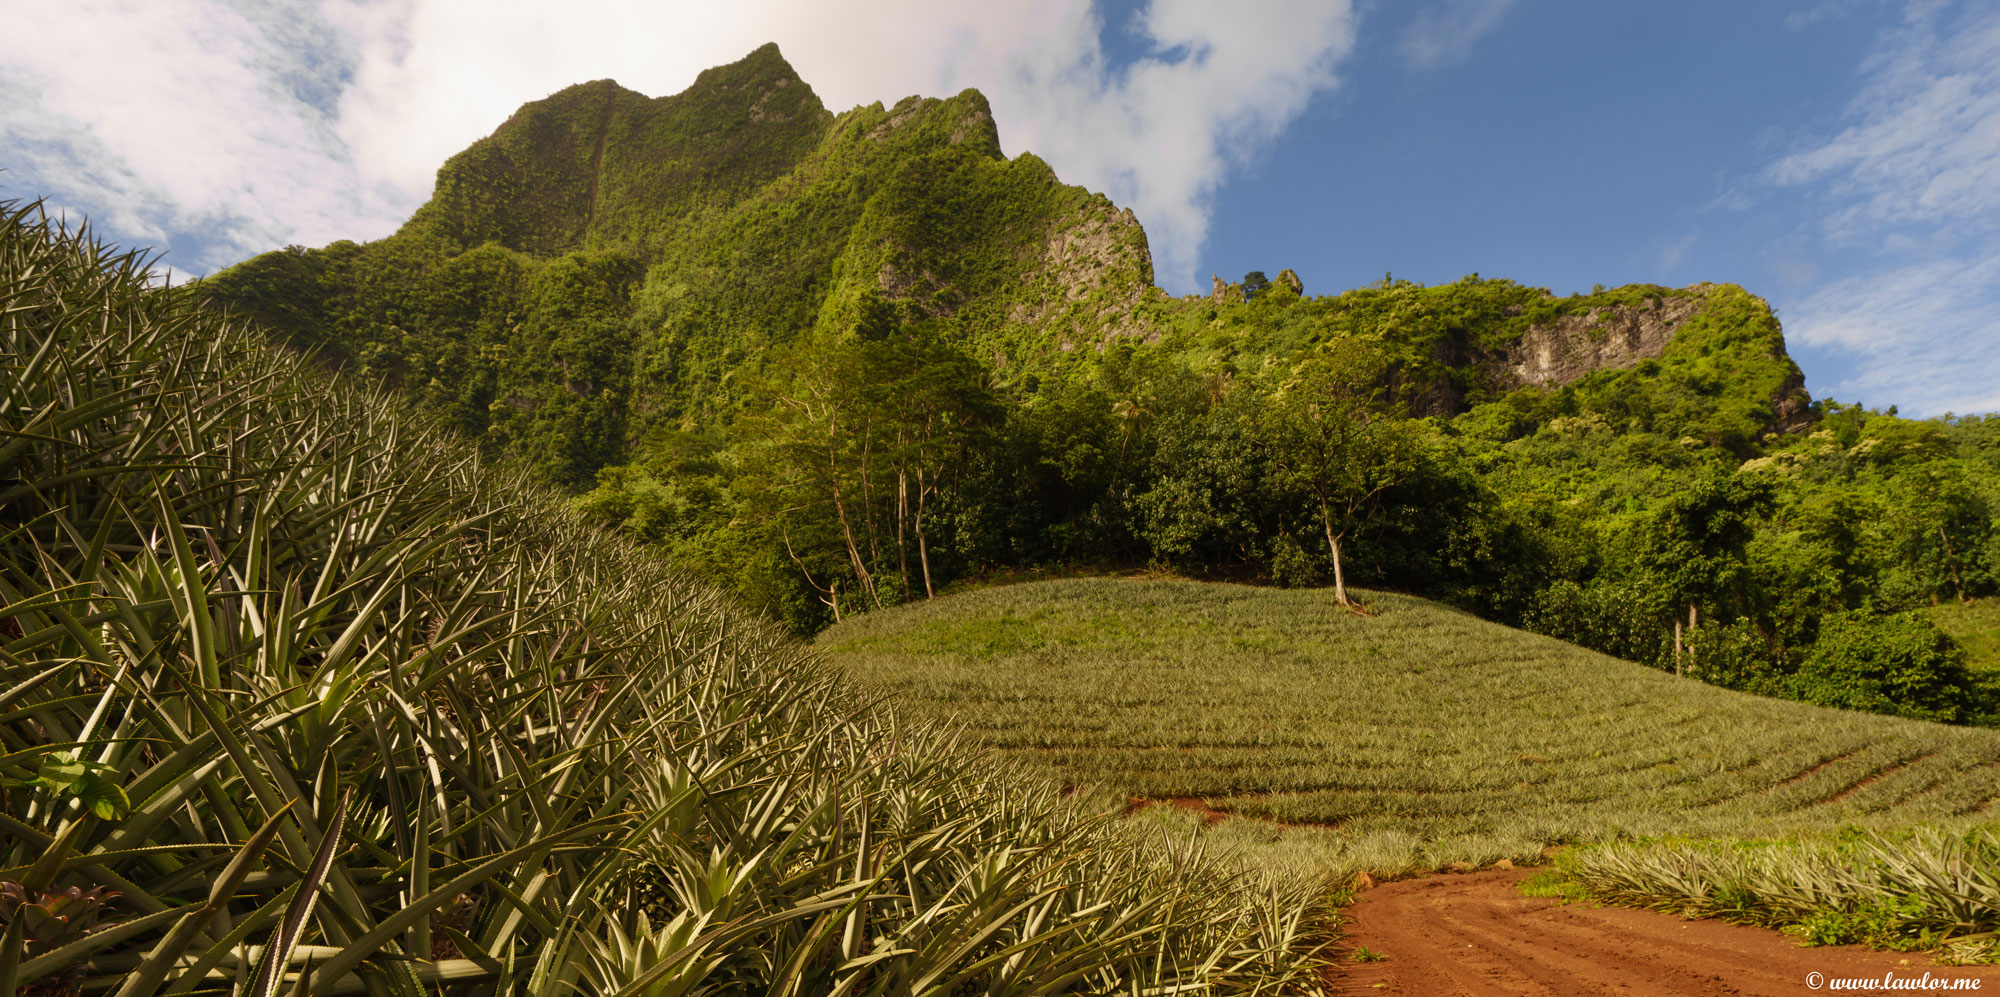 Pineapple Farm, Moorea - French -Polynesia, Free Landscape Photography, free landscape photos, free nature images, free HD images, free high definition stock images, free stock images download, desktop background, desktop wallpapers, free screensaver, landscape photography